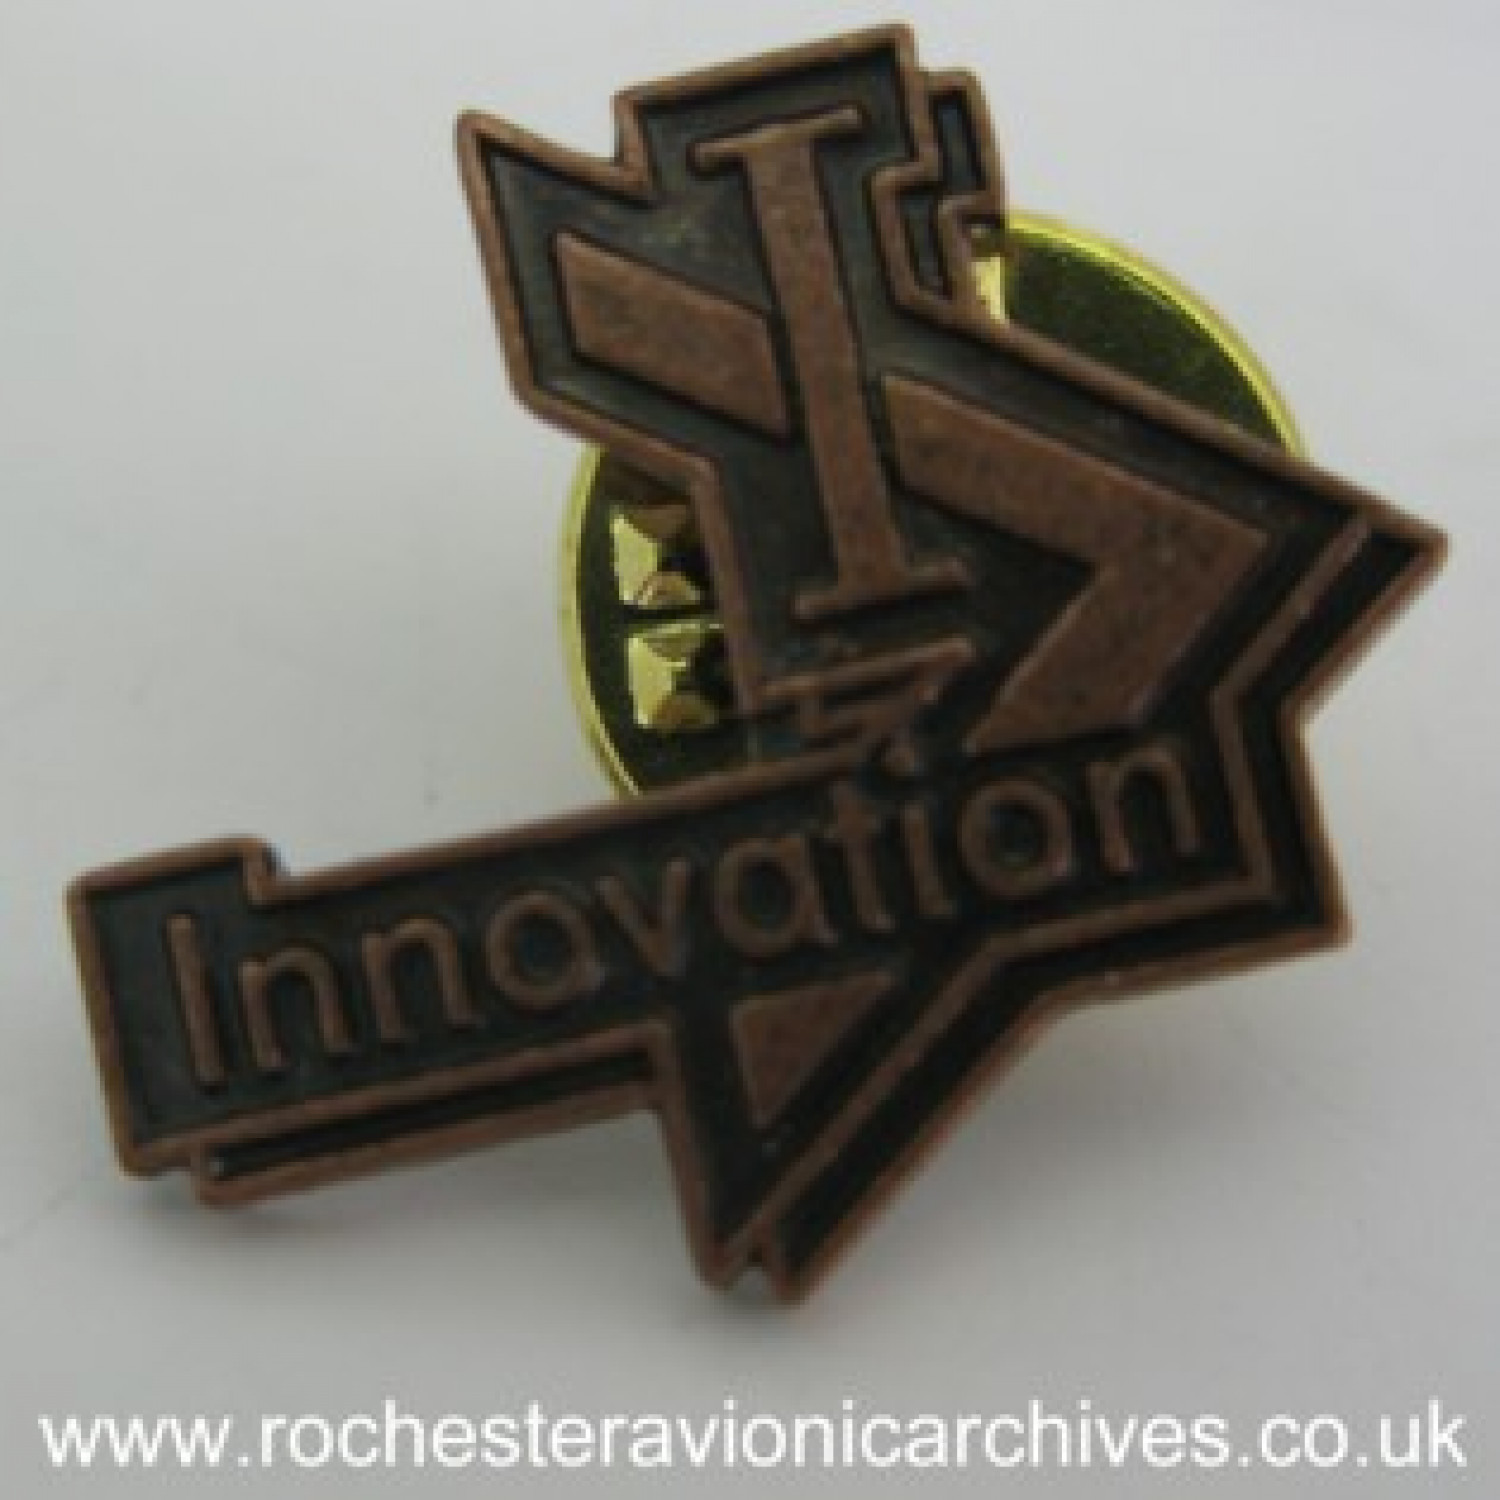 Innovation Award Lapel Badge